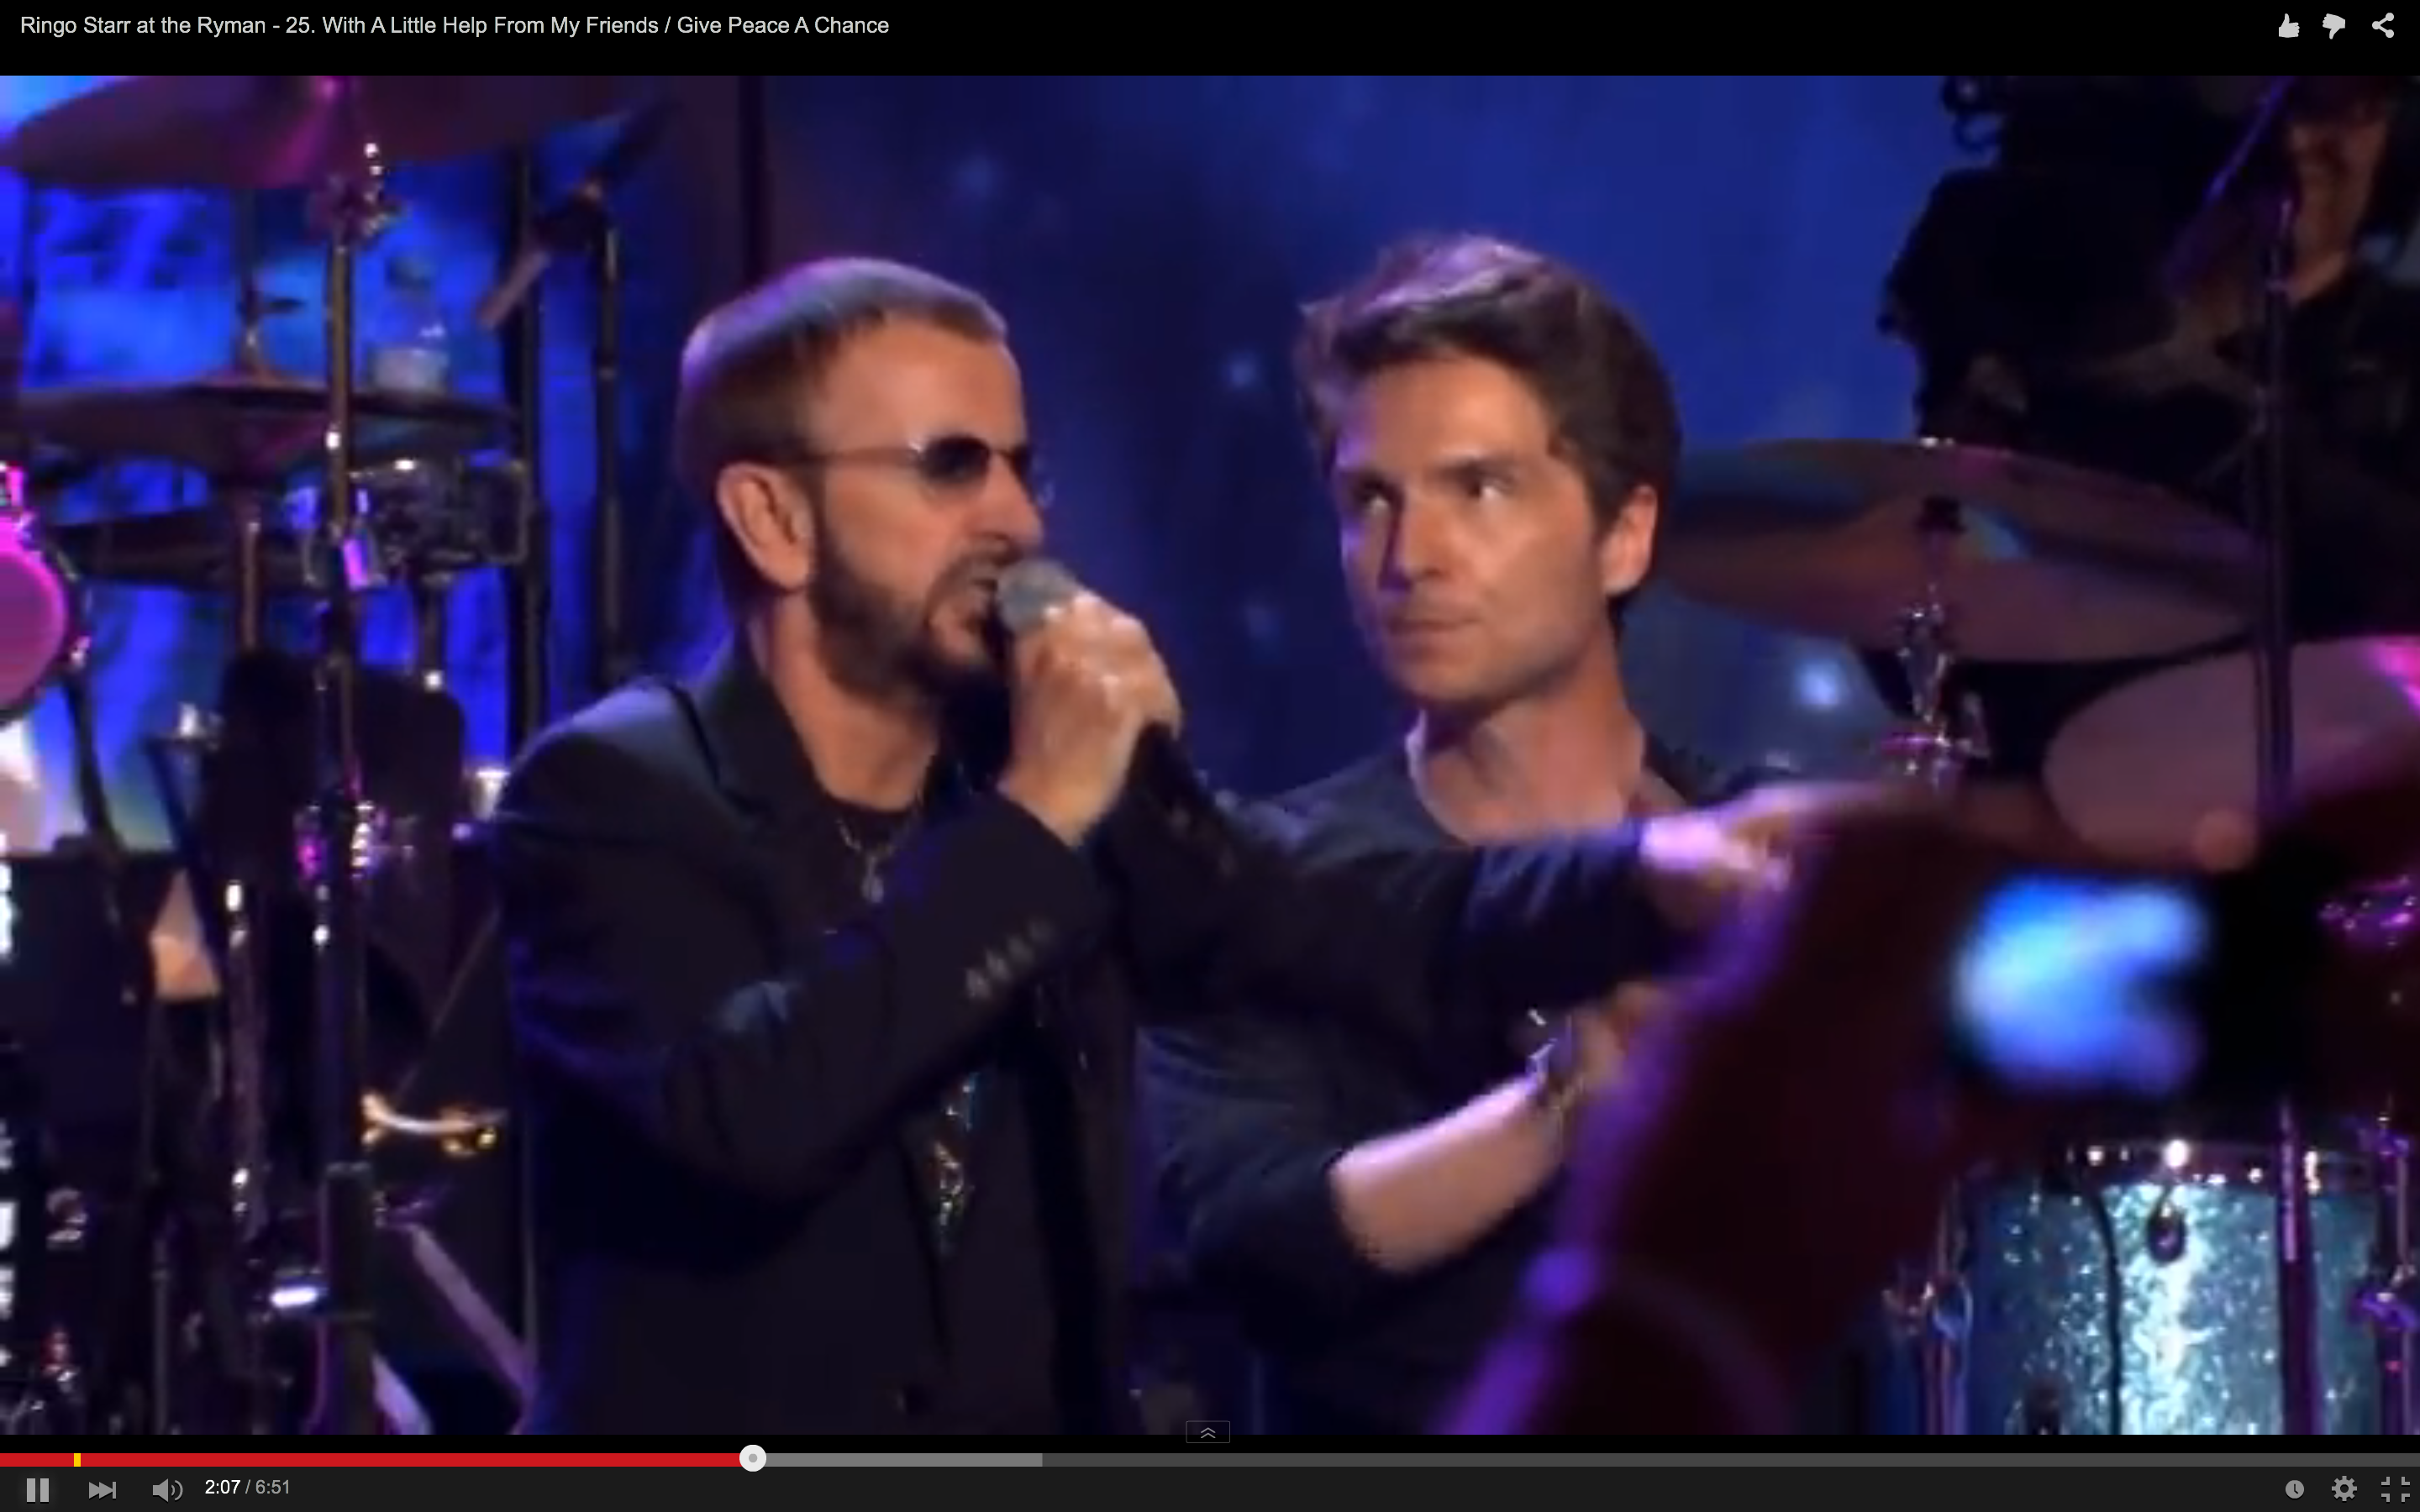 With Little Help From Its Friends Peace >> Flashback See Ringo Starr Lead All Star Nashville Jam Rolling Stone